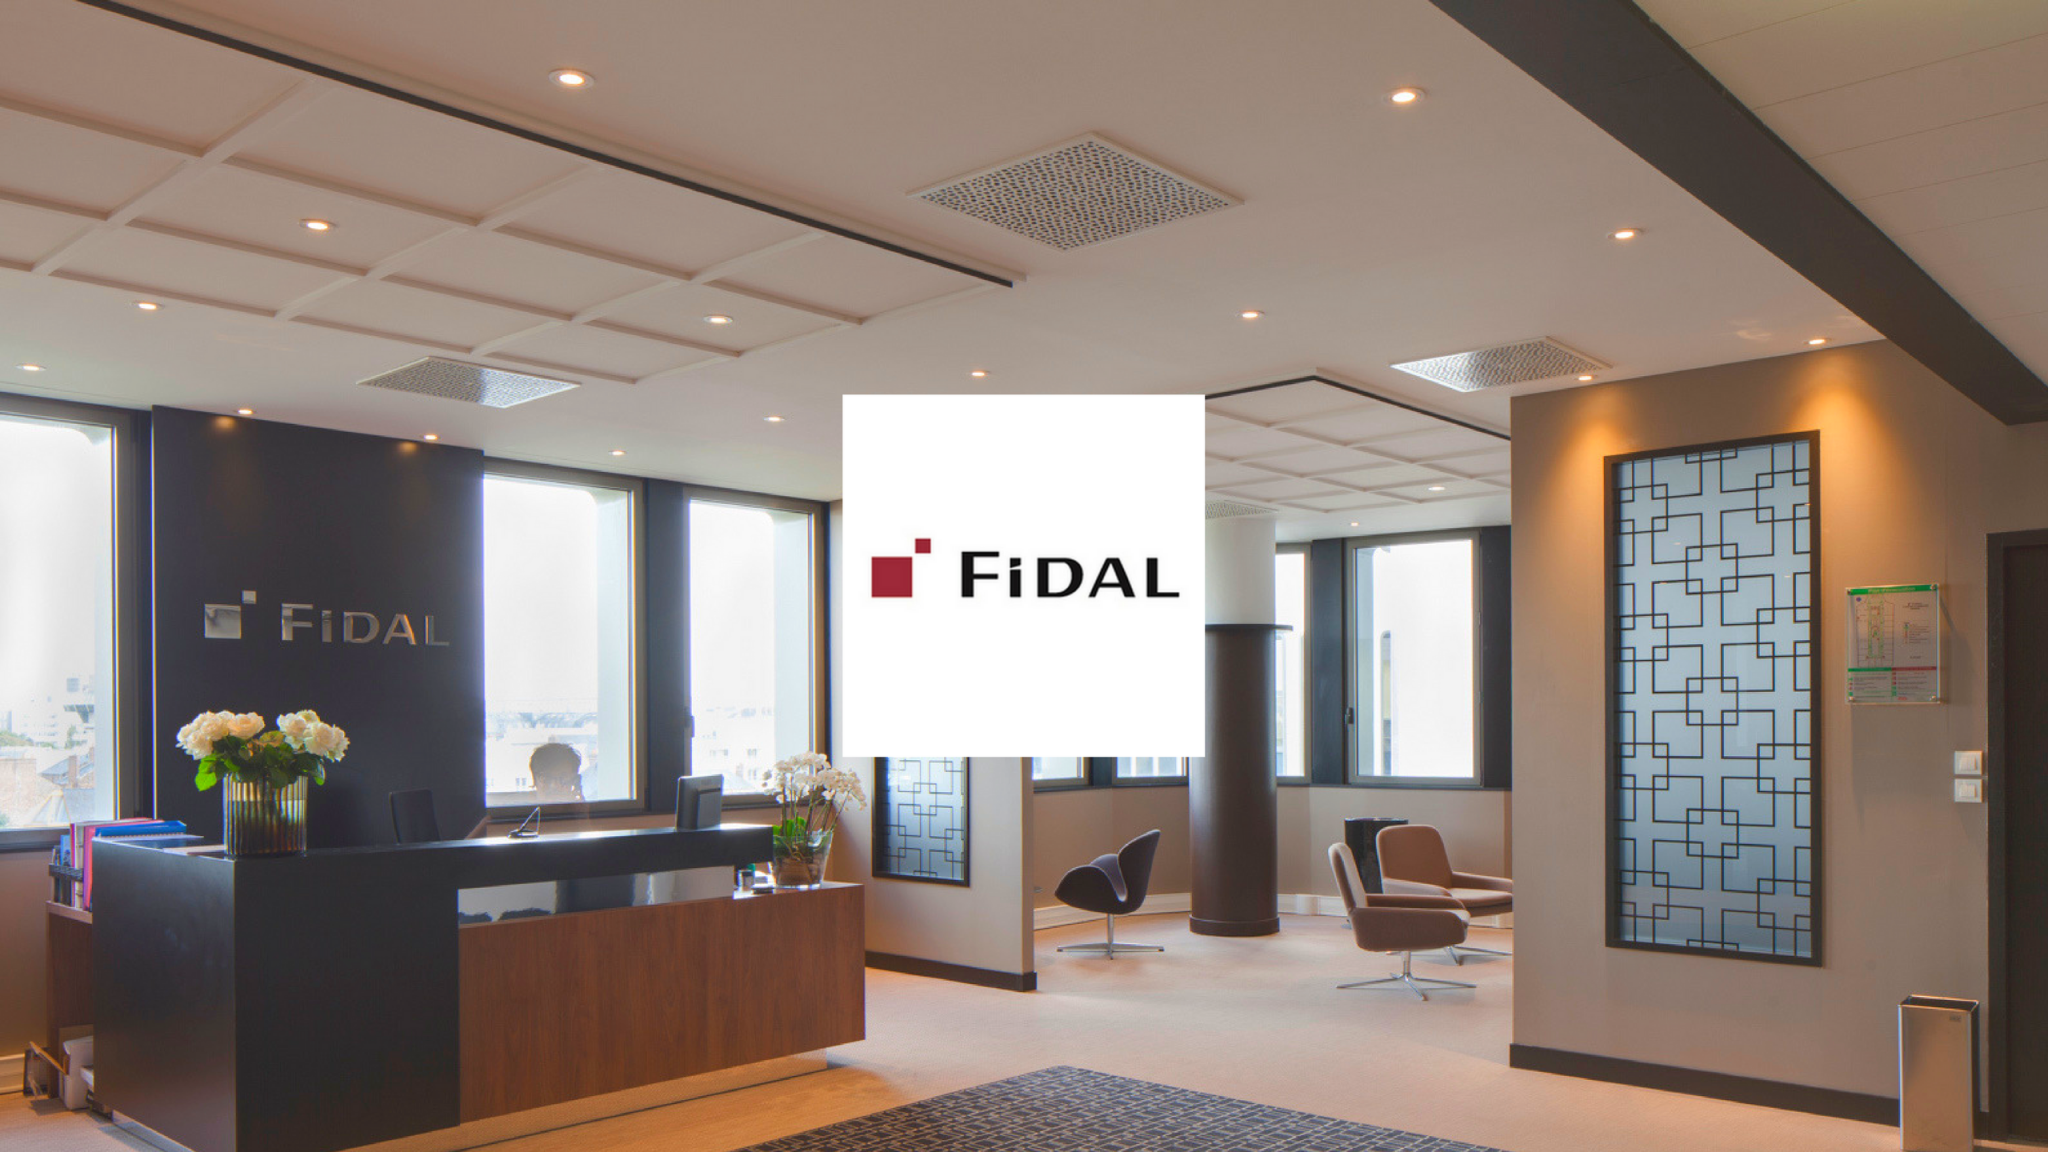 Fidal Best Law Firms in the World UpSlide